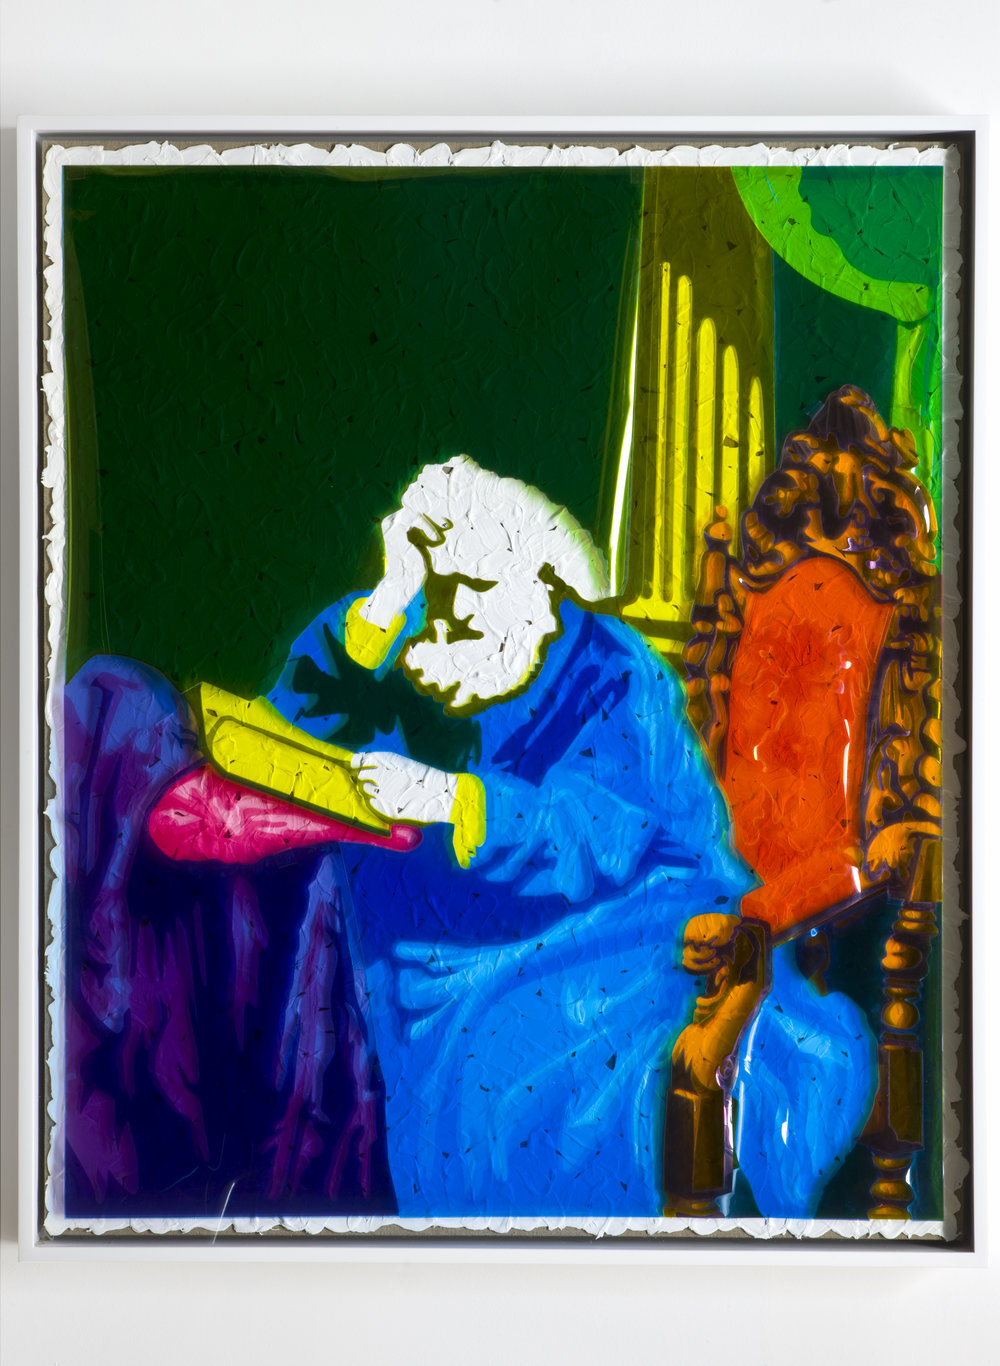 "Overlay Series: Early Black and White Photograph (""Portrait by Antoine Samuel Adam-Salomon, c. 1865); Color Acetate Red, Yellow and Blue; Brushstrokes; and Linen Canvas on Stretcher Bars., 2008 red, yellow and blue film gels and acrylic on linen canvas 119,4 x 100 cm - 47 x 39 3/8 inches"